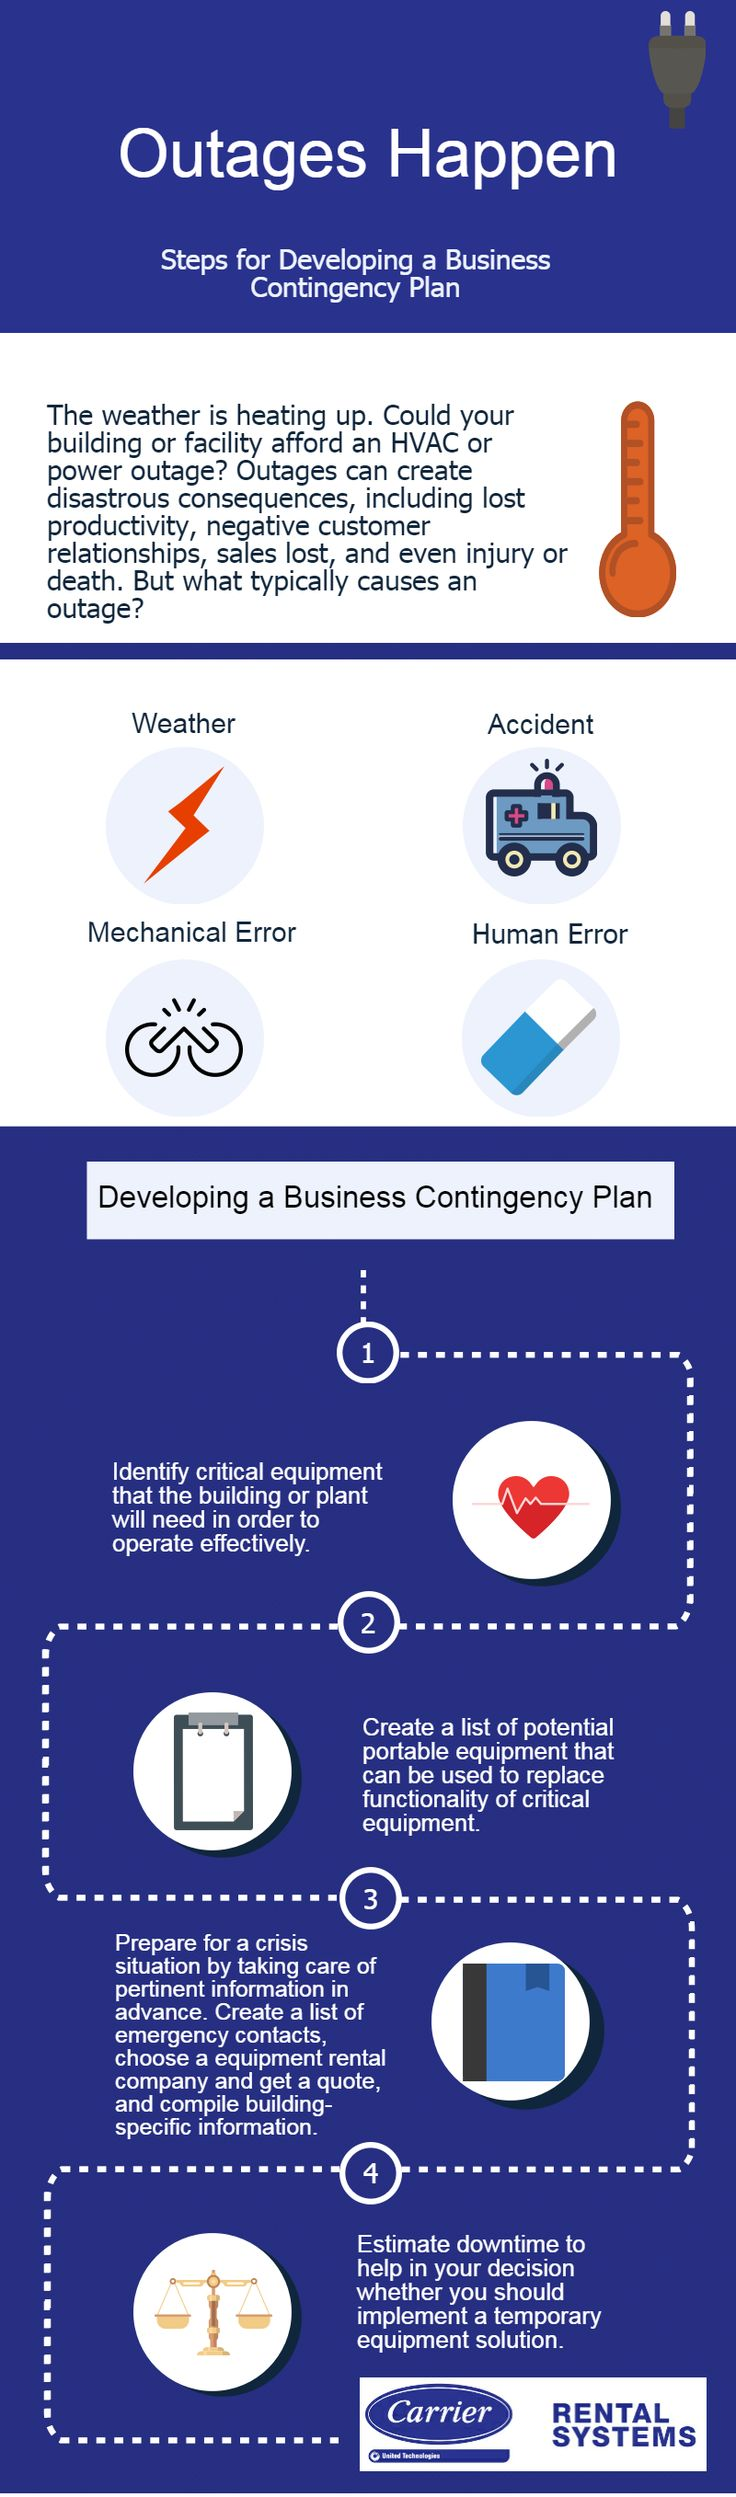 how to develop a contingency plan